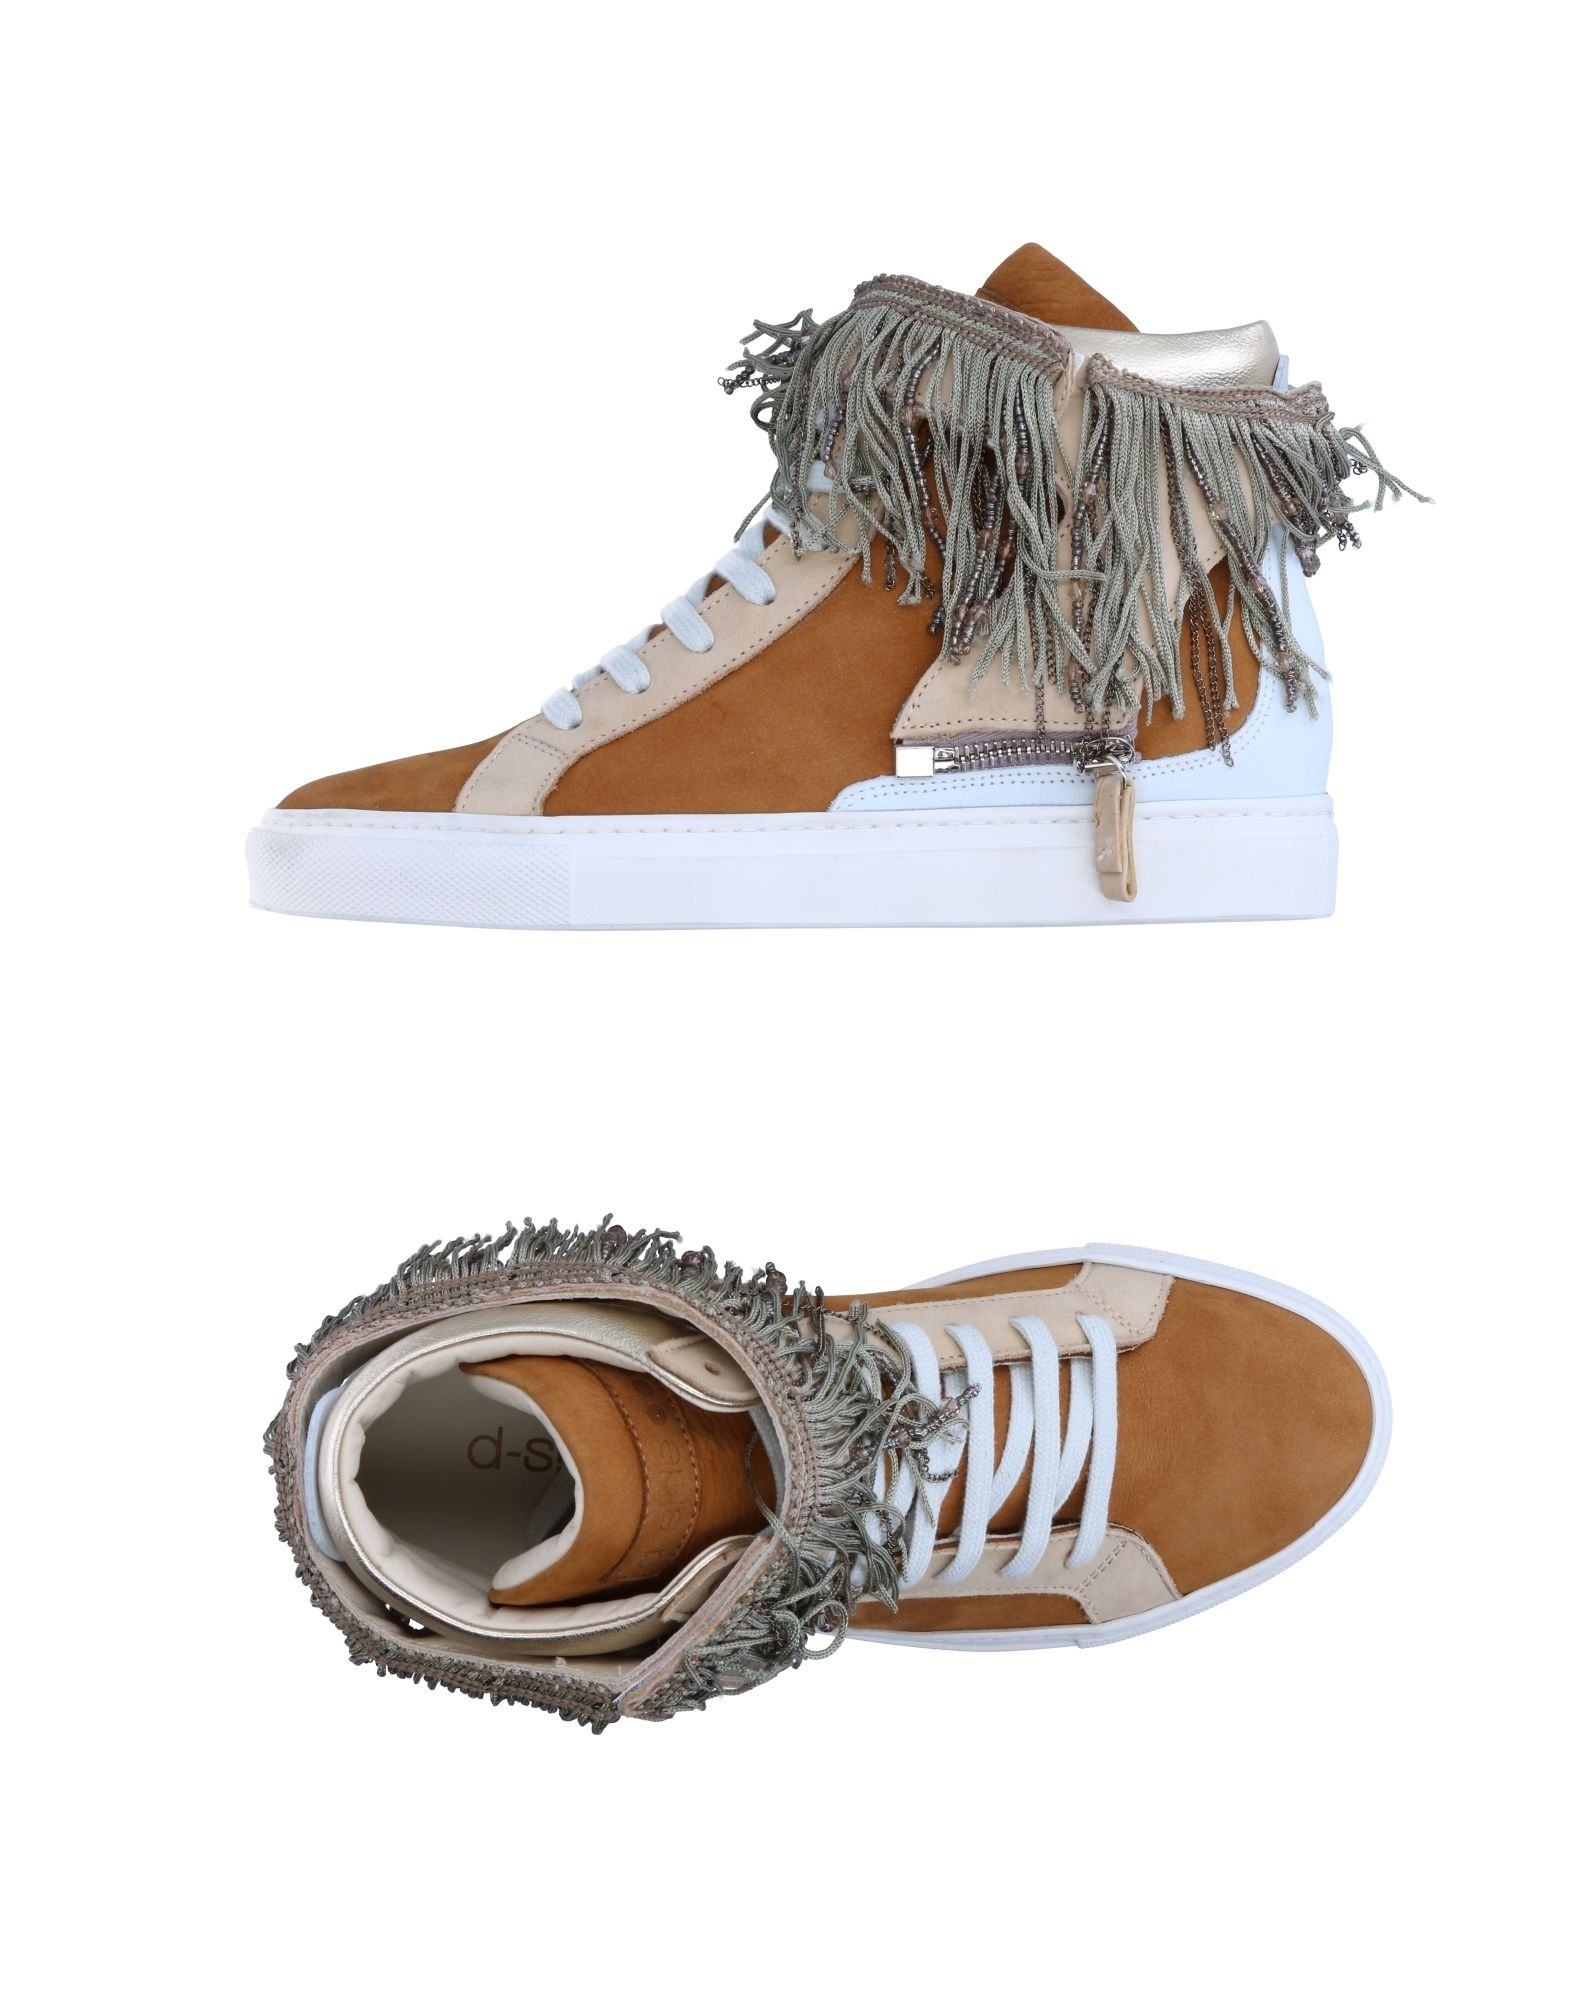 D-S!De D-S!De D-S!De Sneakers - Women D-S!De Sneakers online on  Canada - 11236474PI d73392